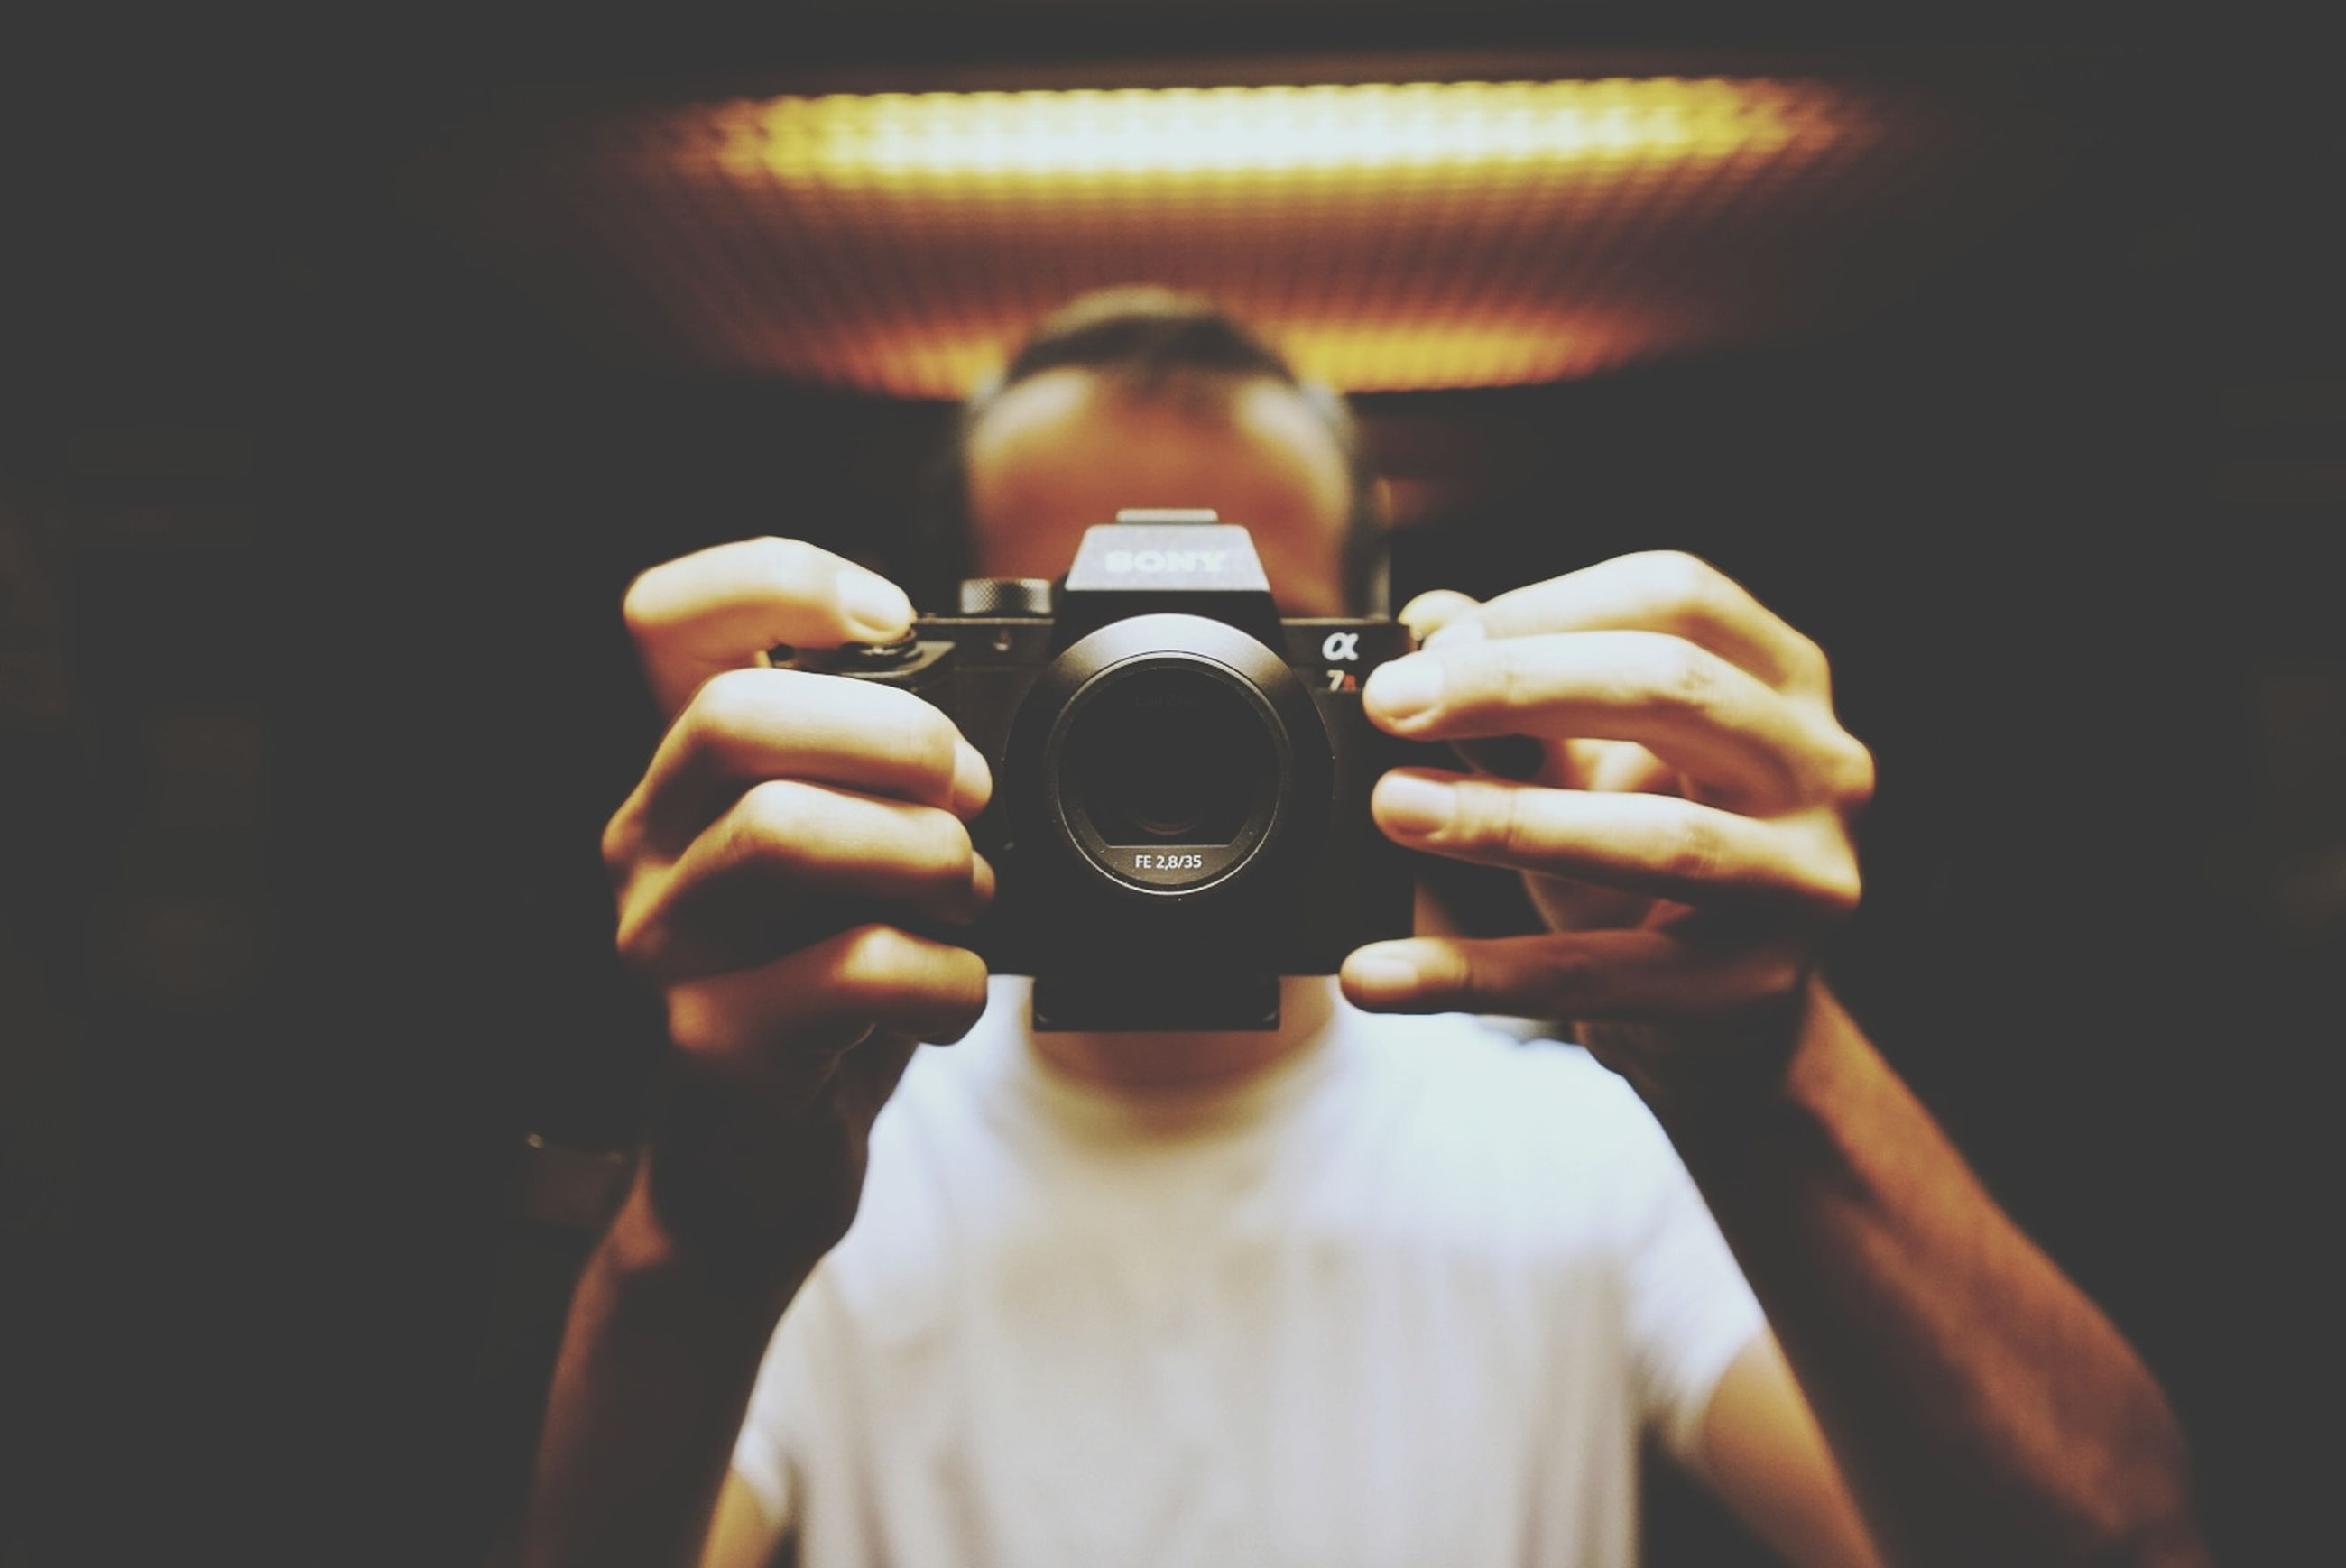 camera - photographic equipment, photography themes, one person, photographing, front view, photographic equipment, holding, occupation, technology, activity, indoors, real people, focus on foreground, headshot, portrait, camera, photographer, digital camera, lifestyles, modern, slr camera